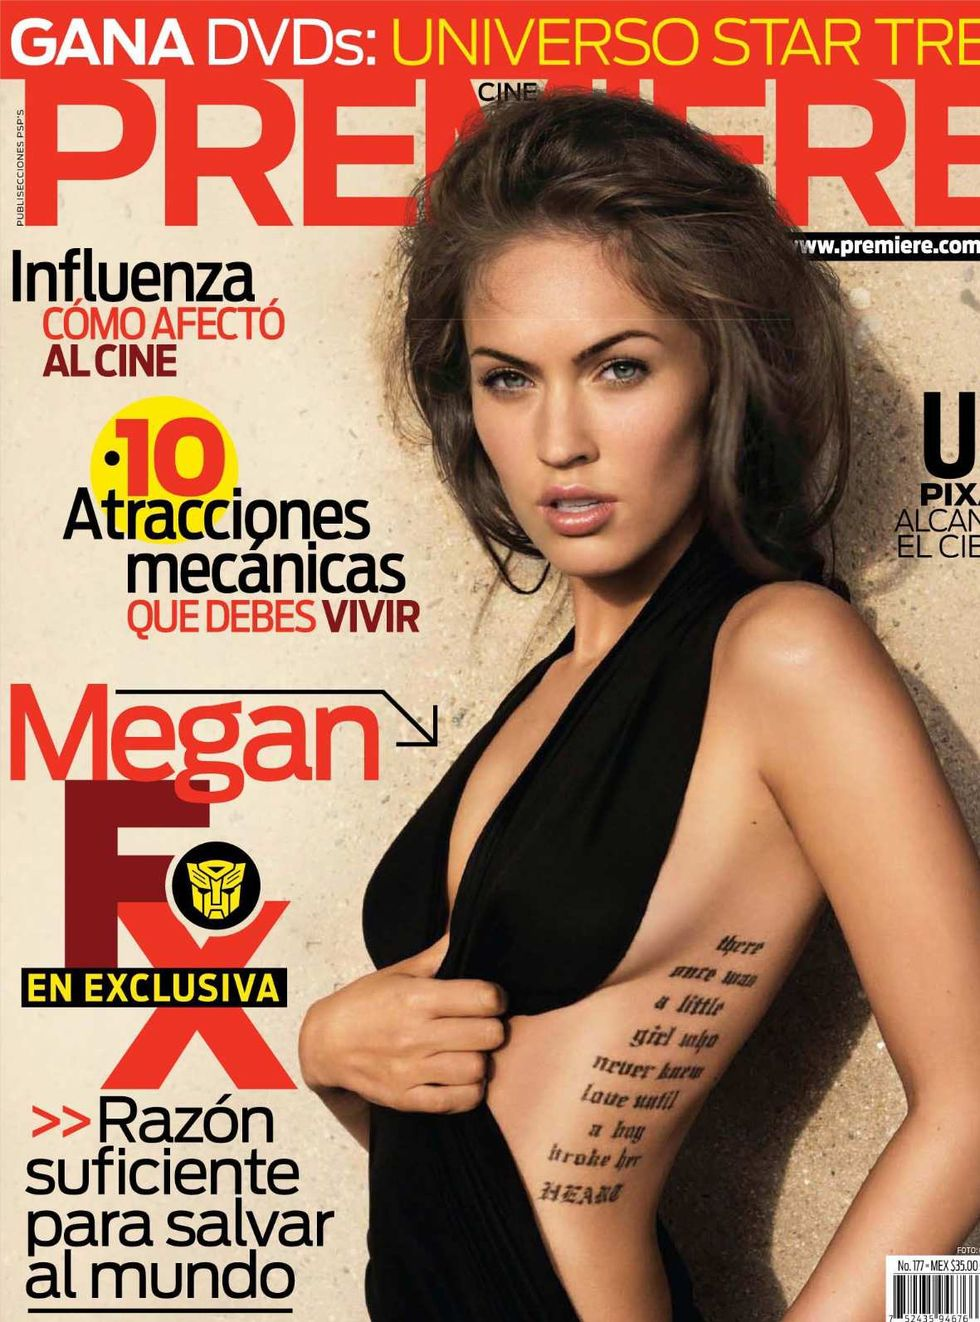 megan-fox-cine-empire-magazine-june-2009-01